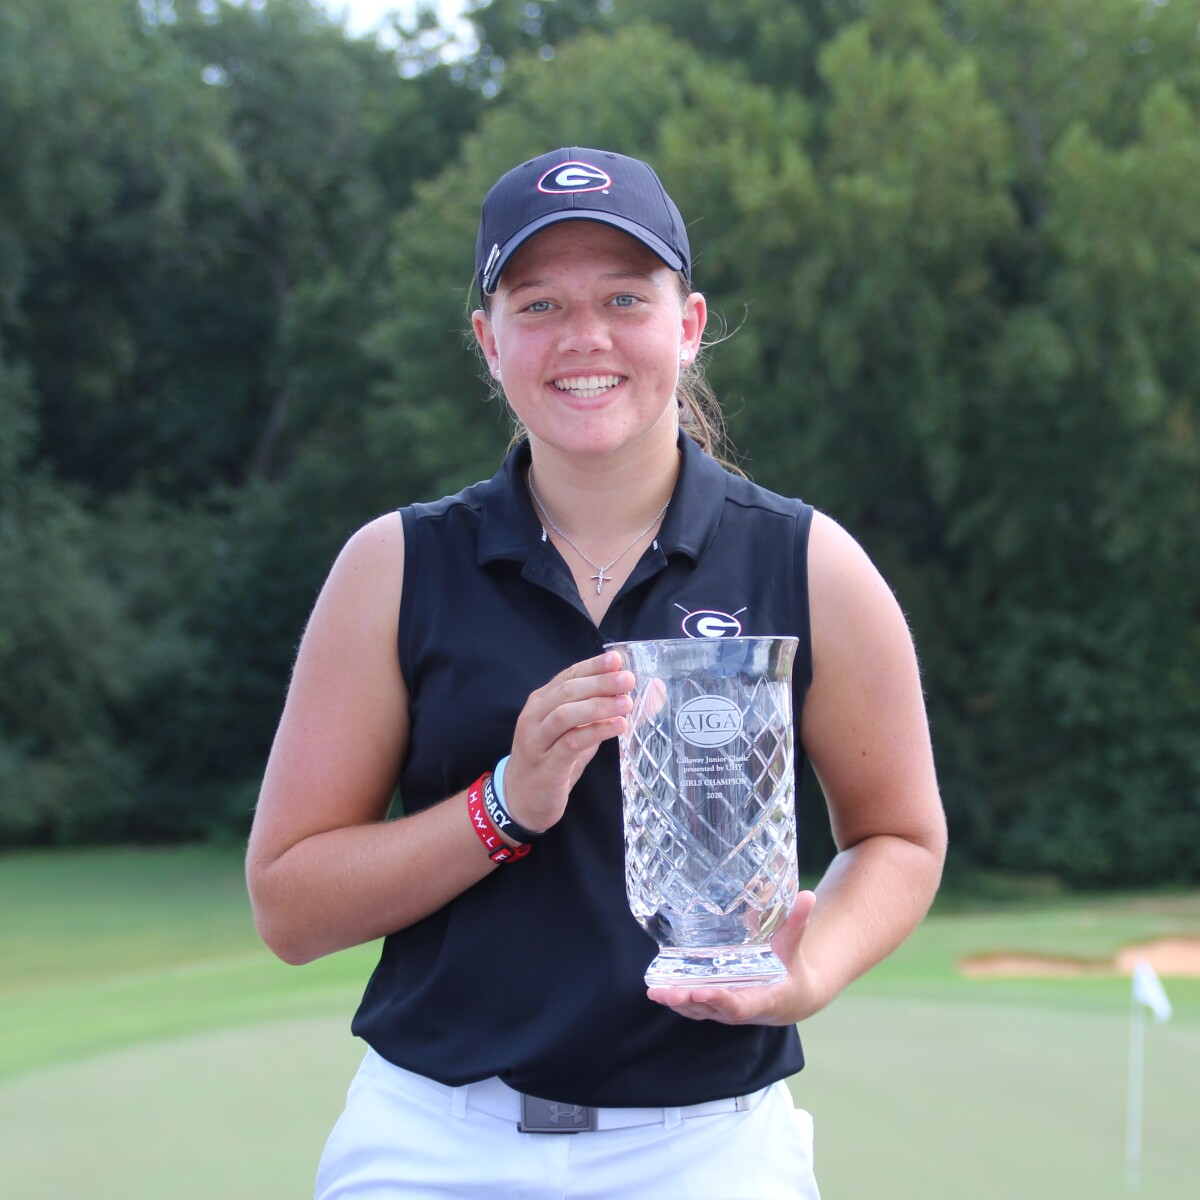 Cowart Eagles final hole to Win First AJGA